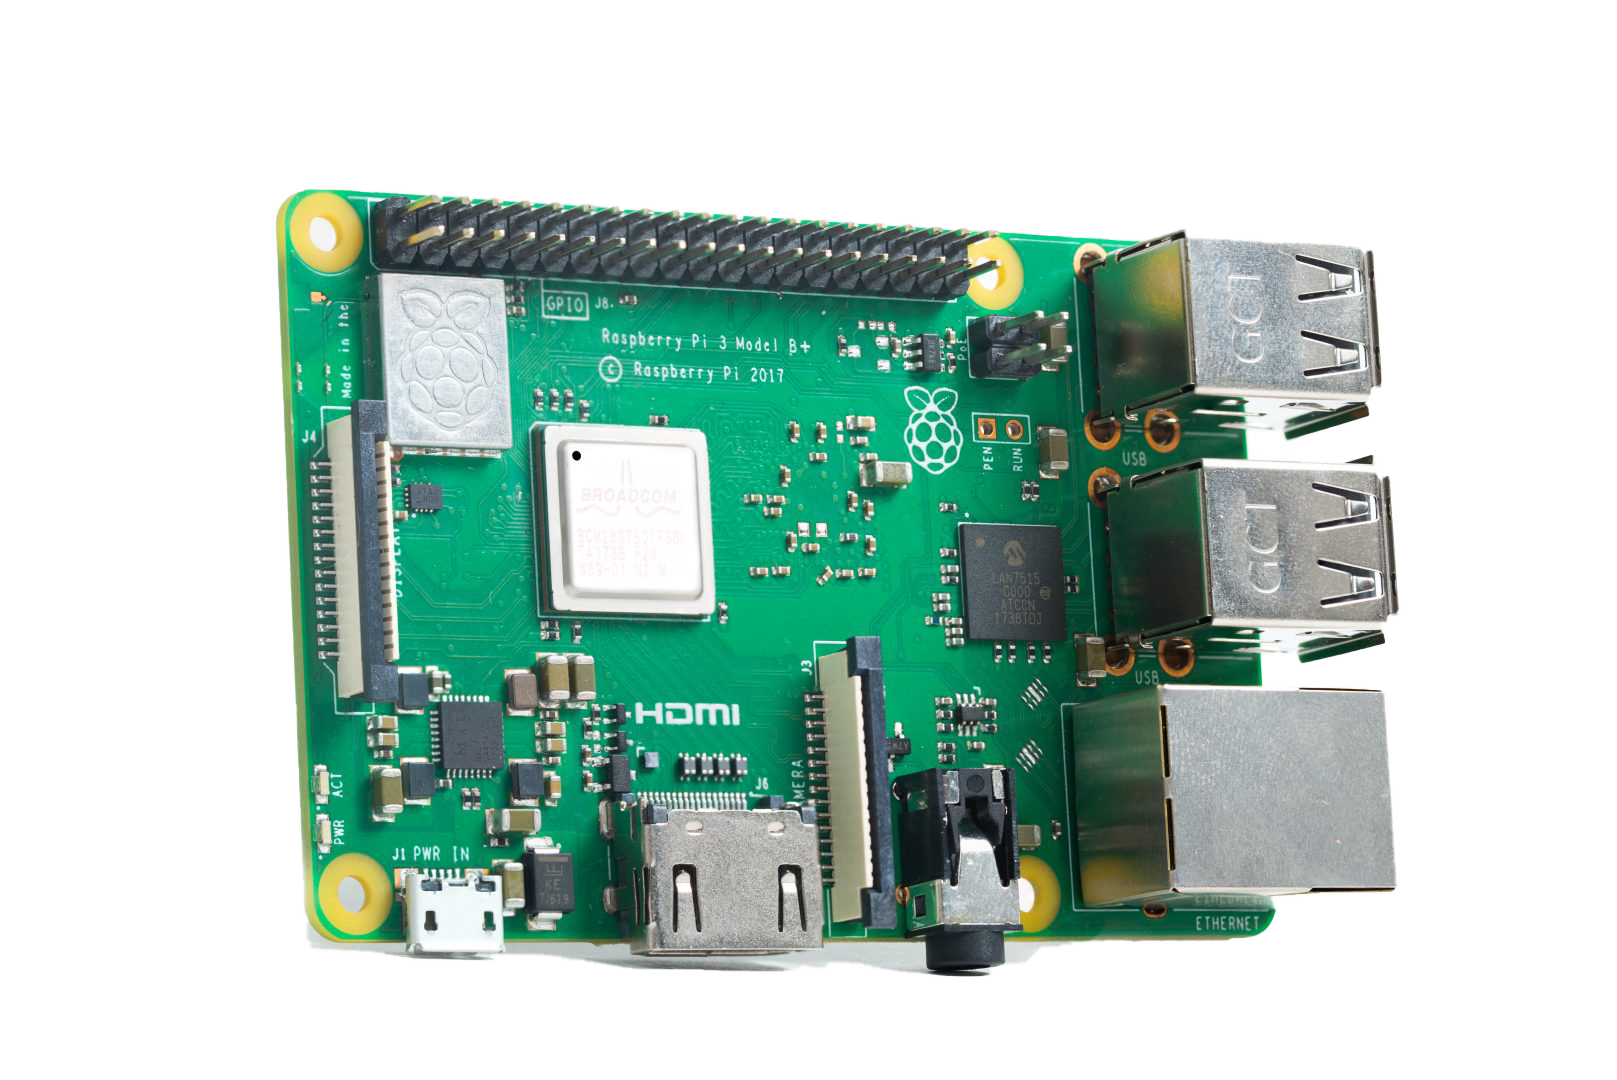 This image is of the new Raspberry Pi 3 Model B+ that is now supported by Screenly.